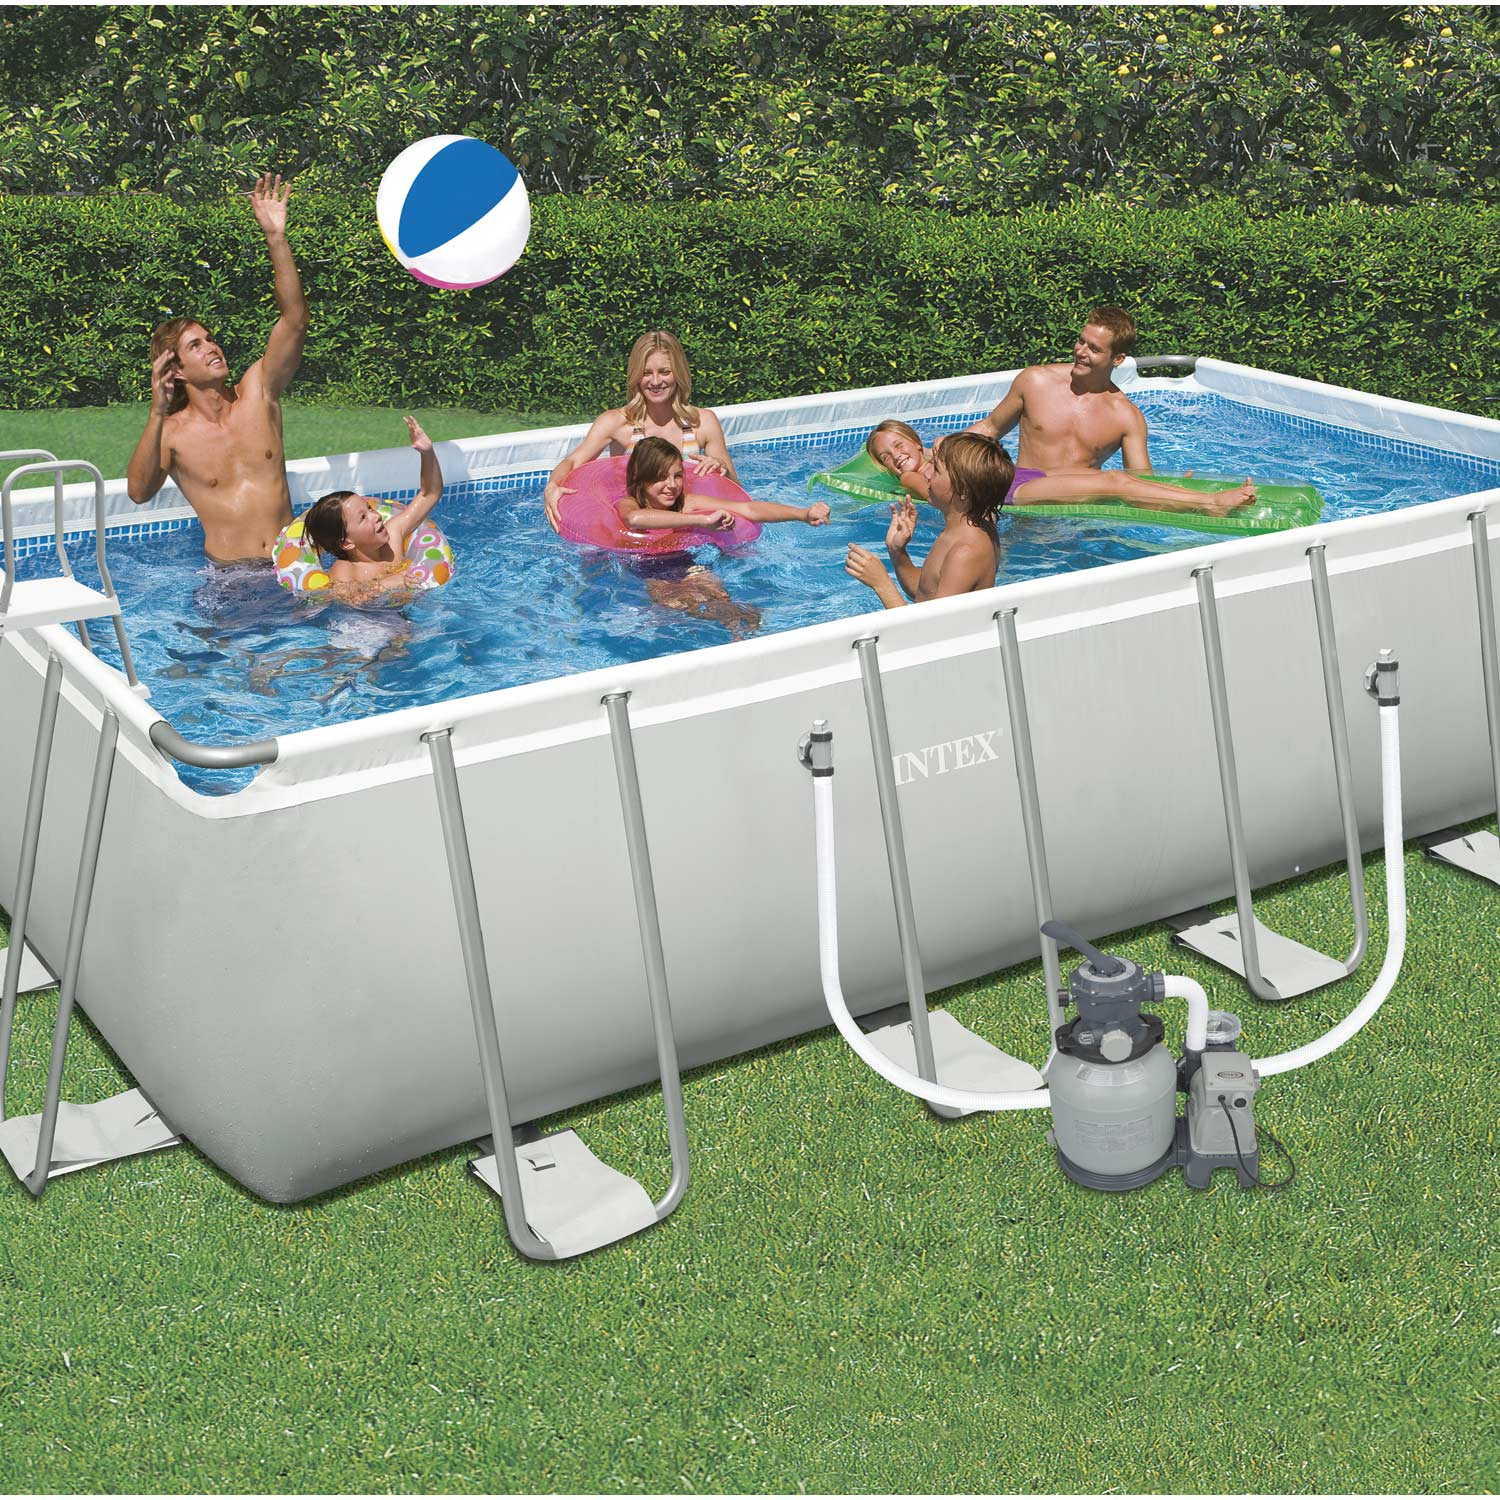 Piscine hors sol autoportante tubulaire ultra silver intex for Piscine hors sol legislation